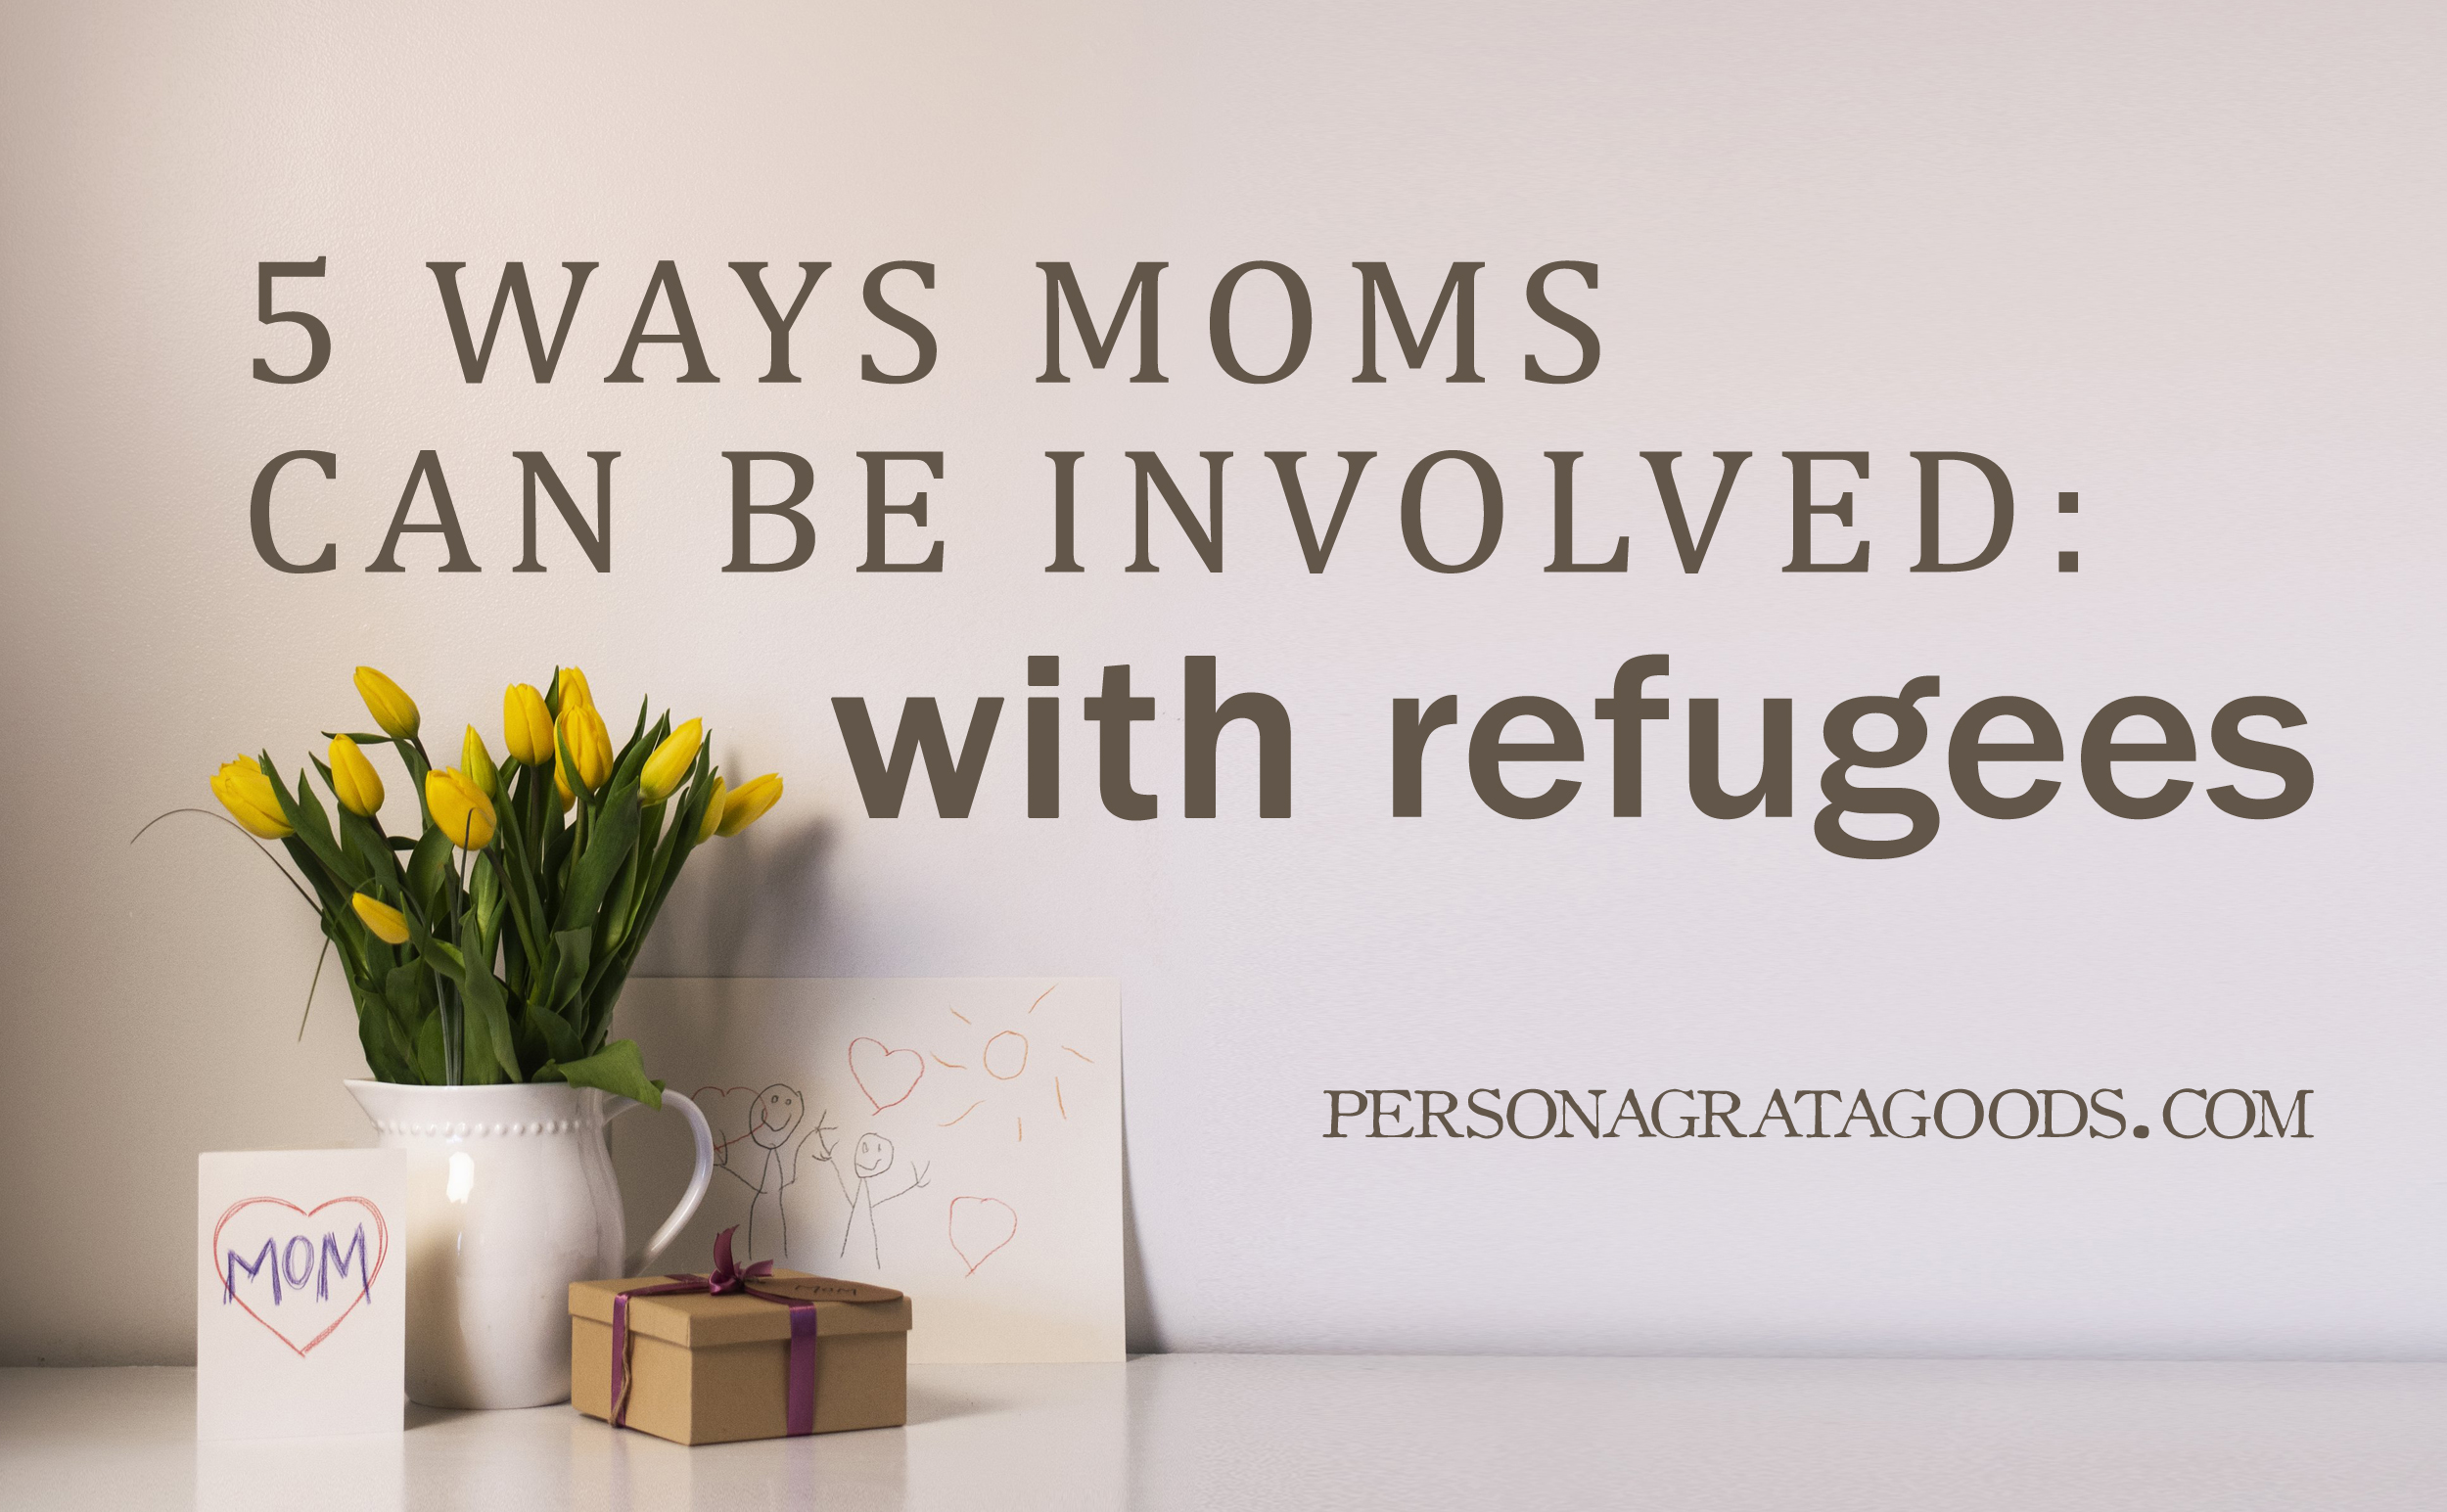 5 Ways Moms Can Help Refugees